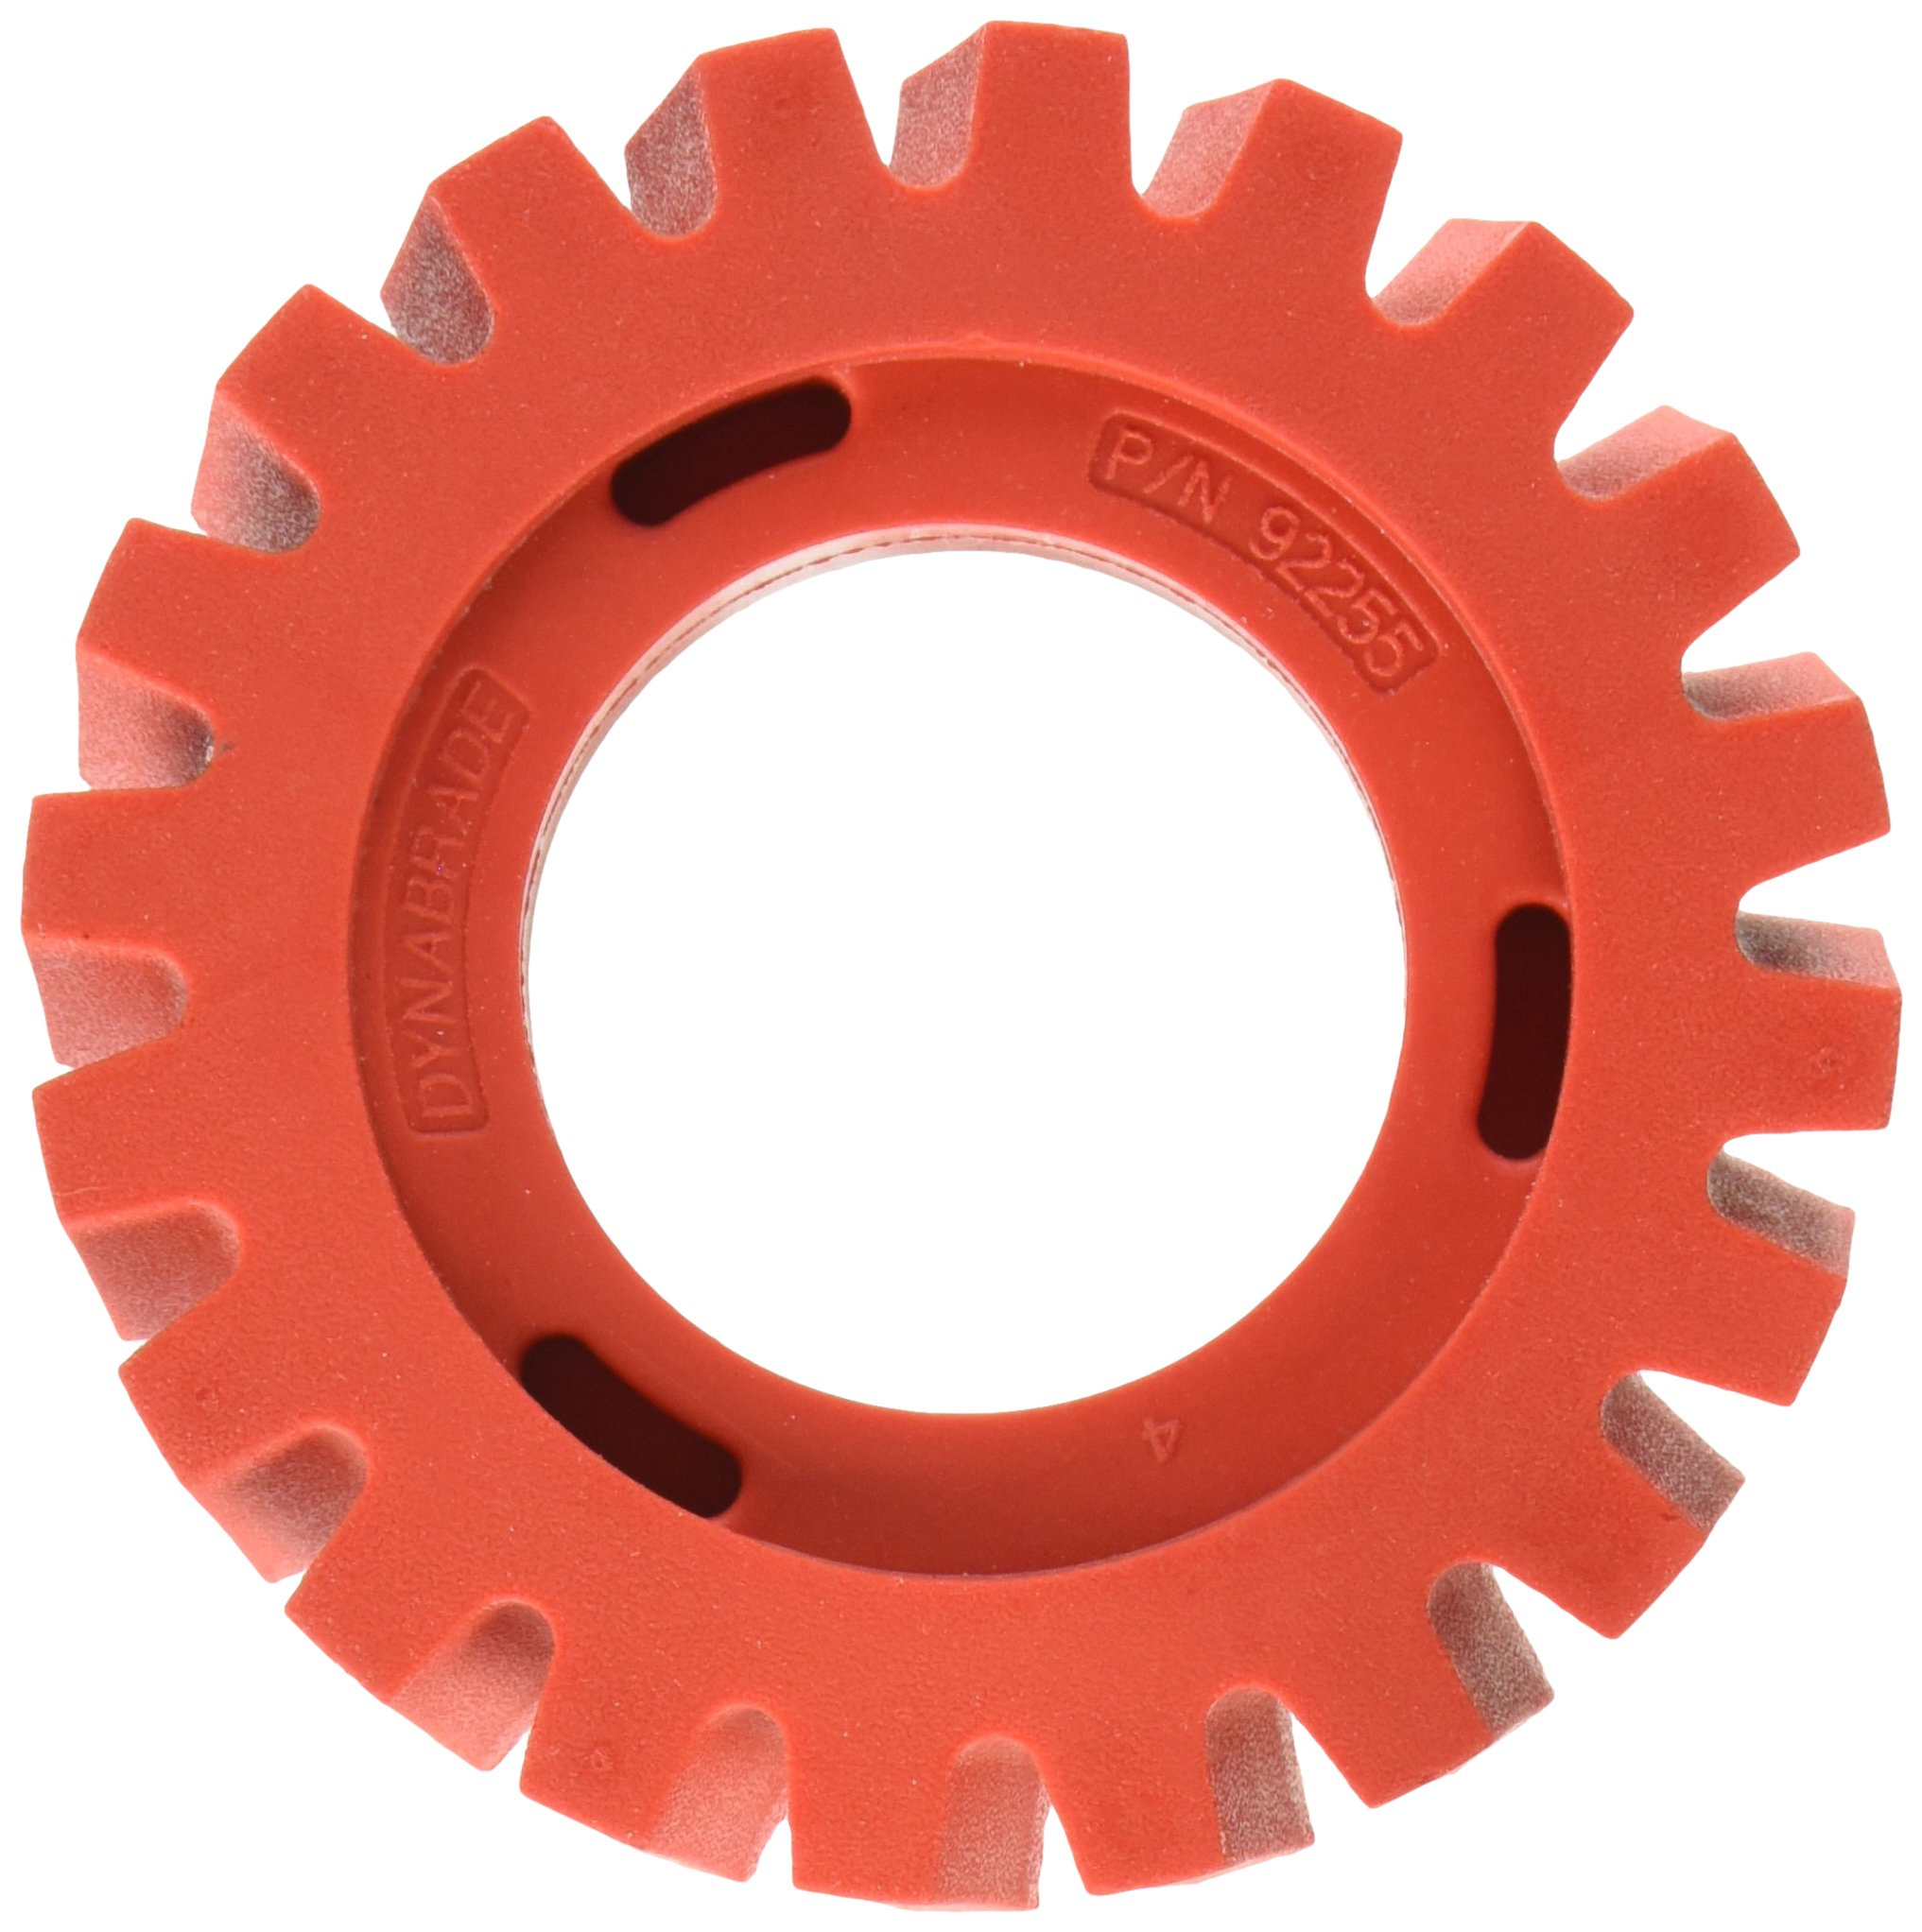 Dynabrade 92255 4-Inch Diameter by 1-1/4-Inch Wide RED-TRED Eraser Wheel; Wheel Only, Red